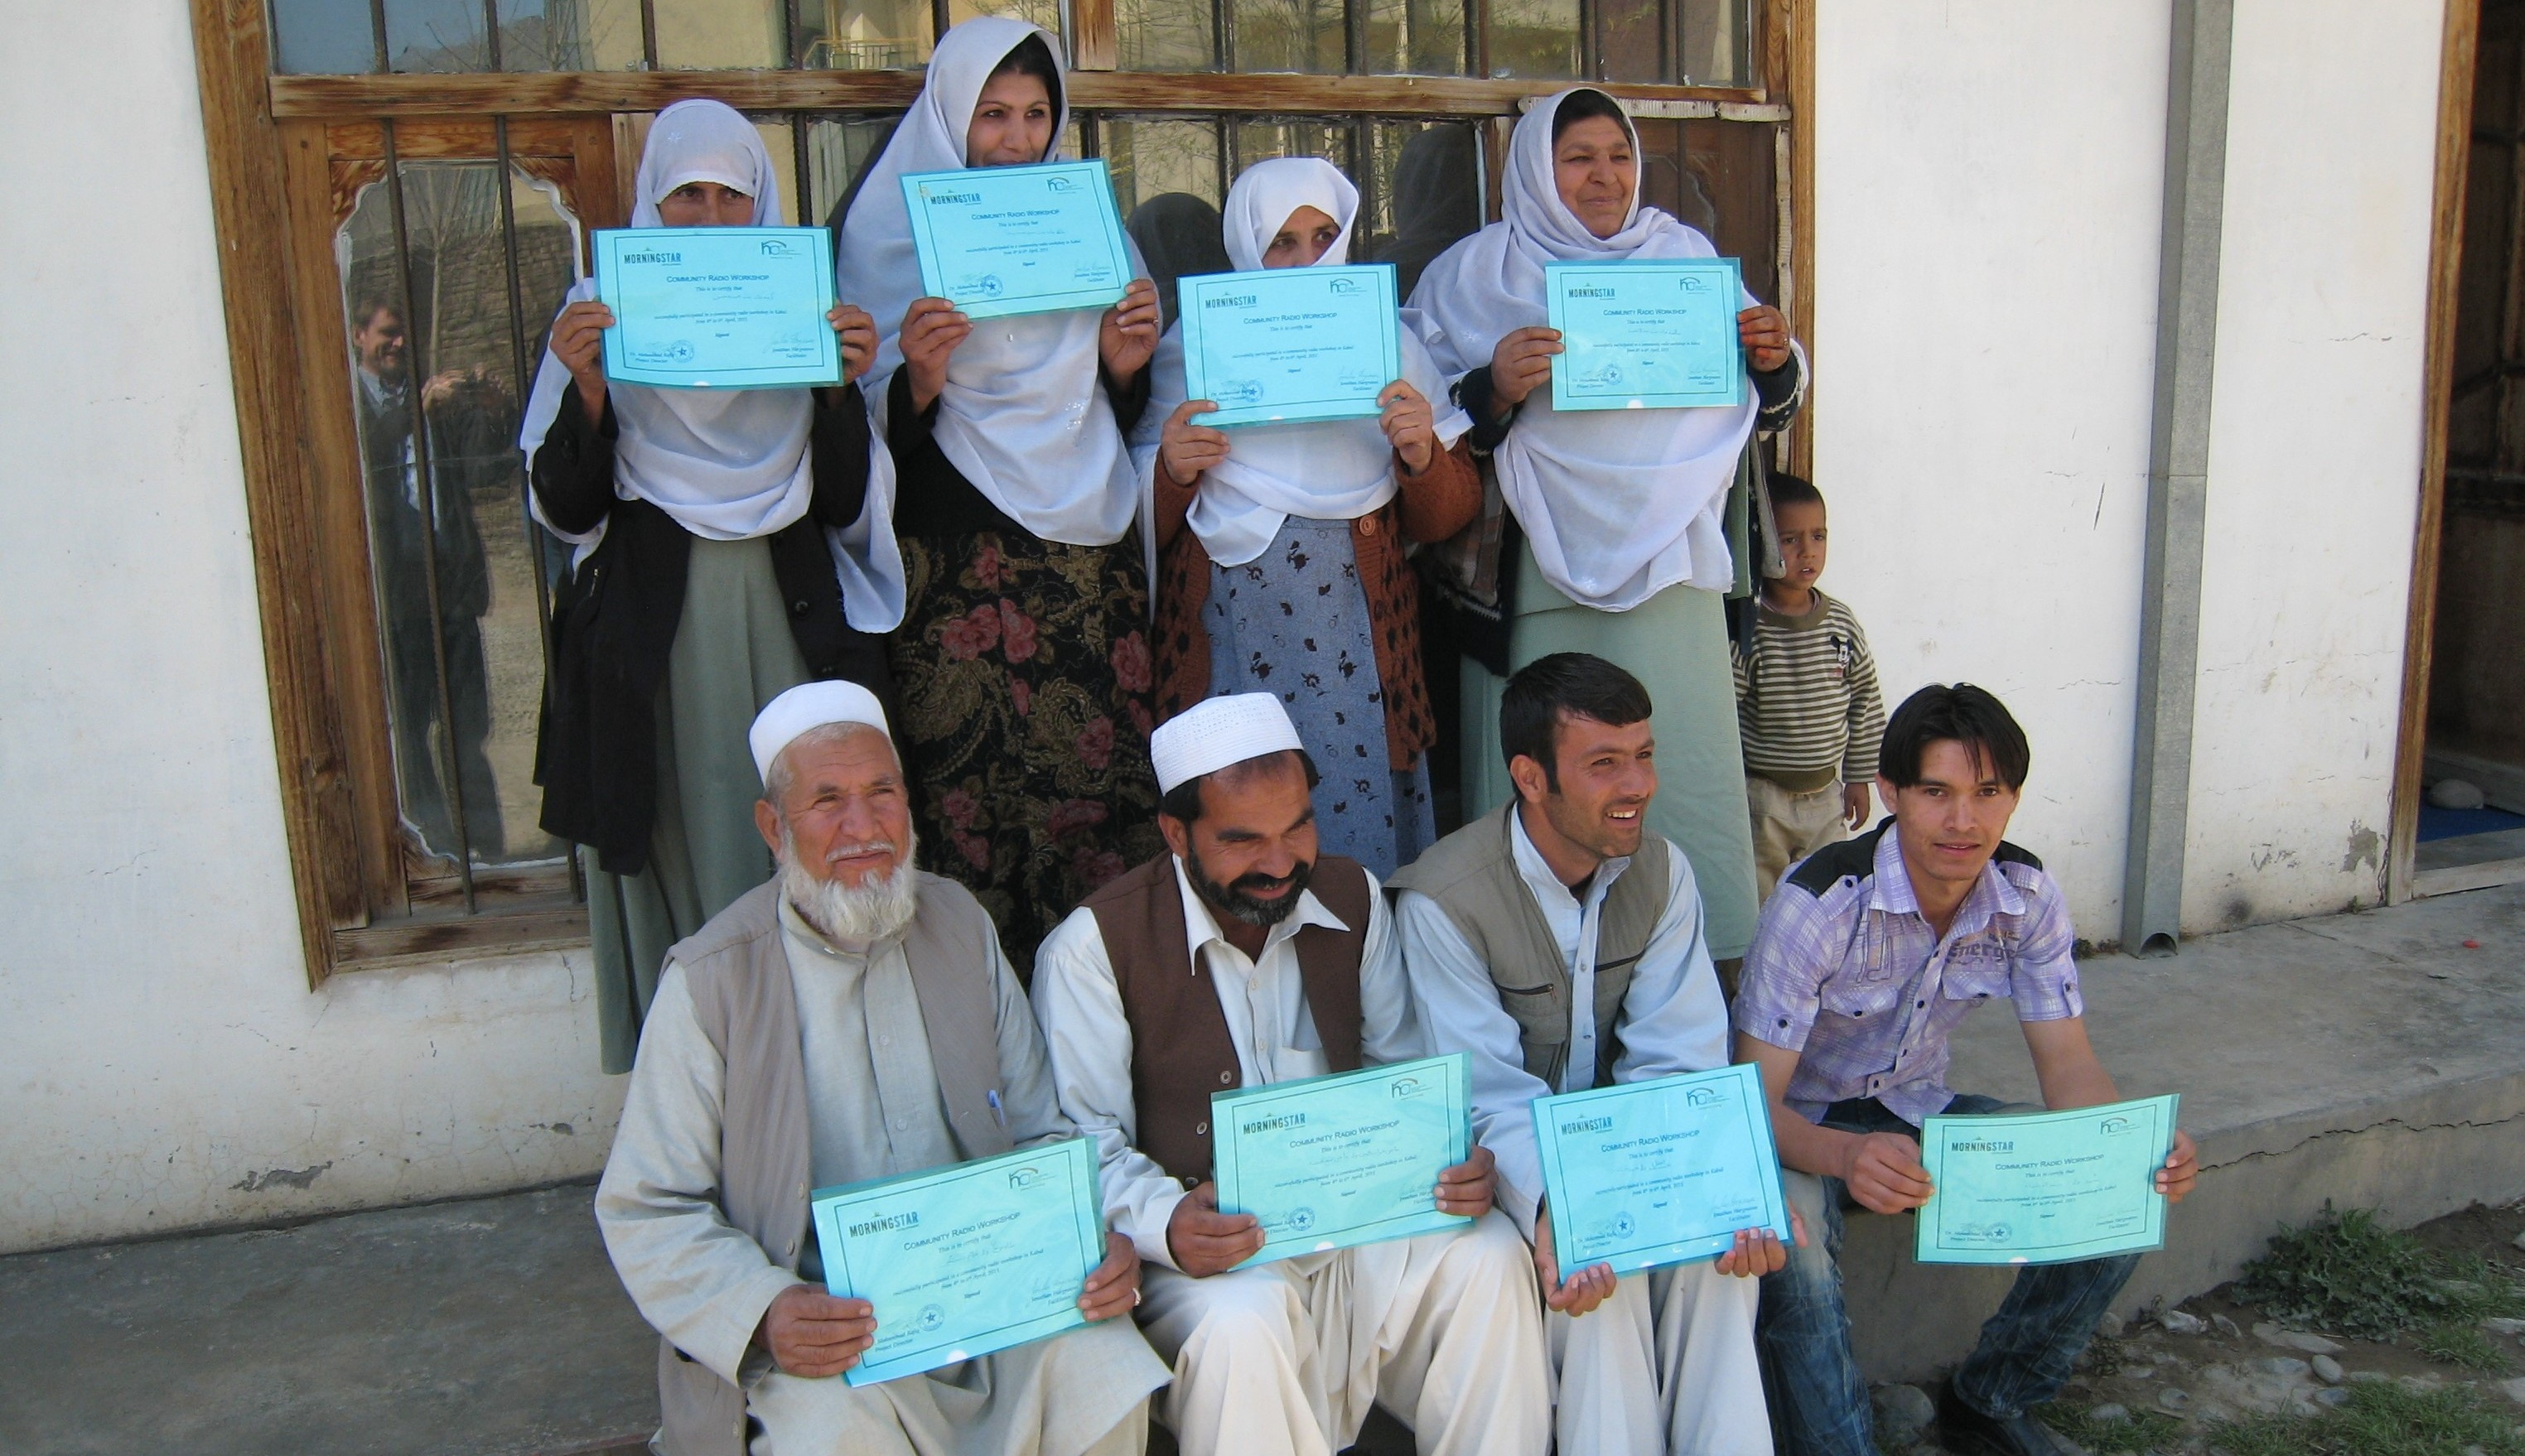 Afghan community health workers proudly displaying their certificates in Community Media after an HCR workshop